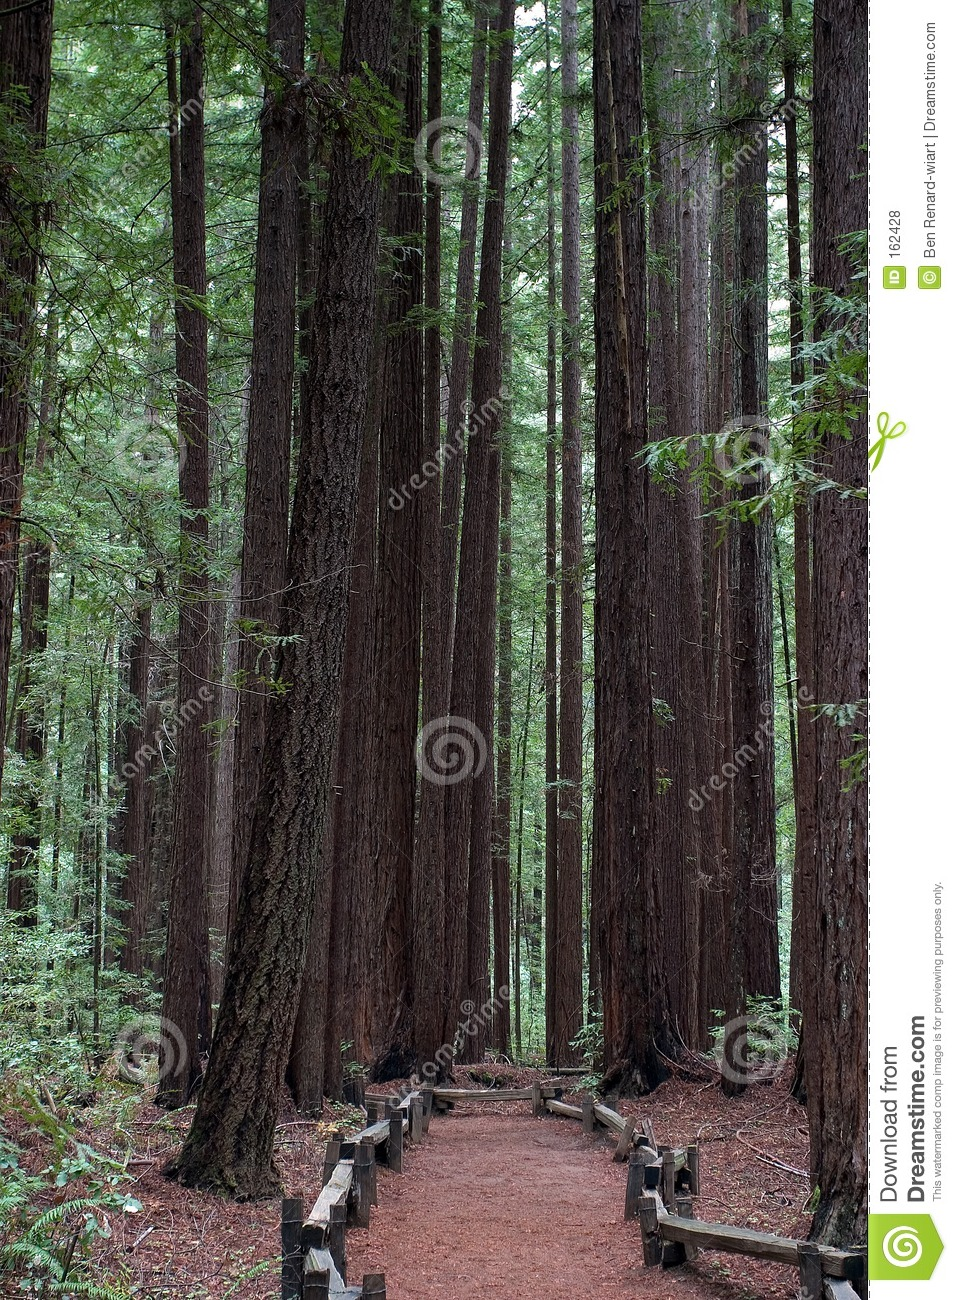 Following a trail in Armstrong Redwood Park.